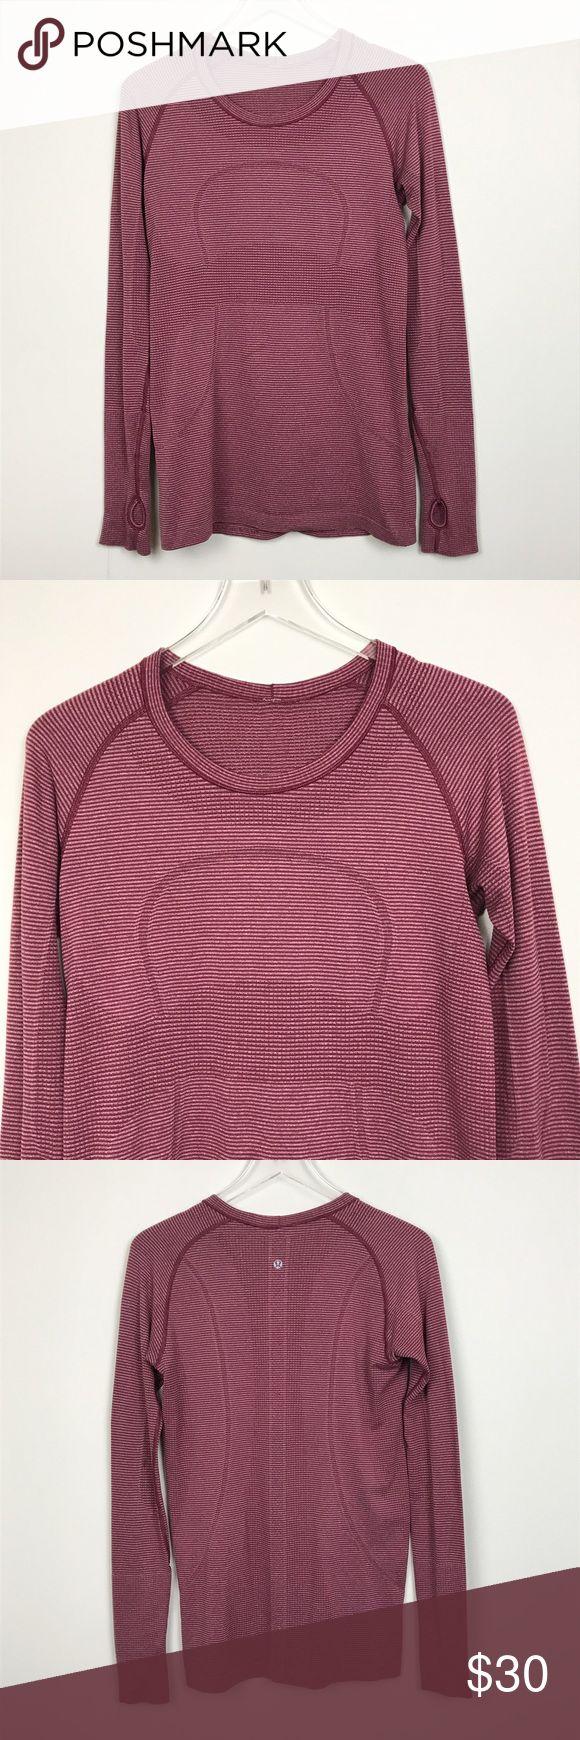 """[Lululemon] Striped Swiftly Tech Long Sleeve Shirt Soft, lightweight long sleeve top. Breathable and sweat-wicking. Crew neck. Thumbholes. Heathered Burgundy color. Has a subtle striped print.   🔹Pit to Pit: 17"""" 🔹Length: 27"""" 🔹Condition: Good pre-owned condition. Inner tag removed. Black mark on back of left elbow. Small hole repaired directly under spot. See photos for close up.  *WW22 lululemon athletica Tops Tees - Long Sleeve"""